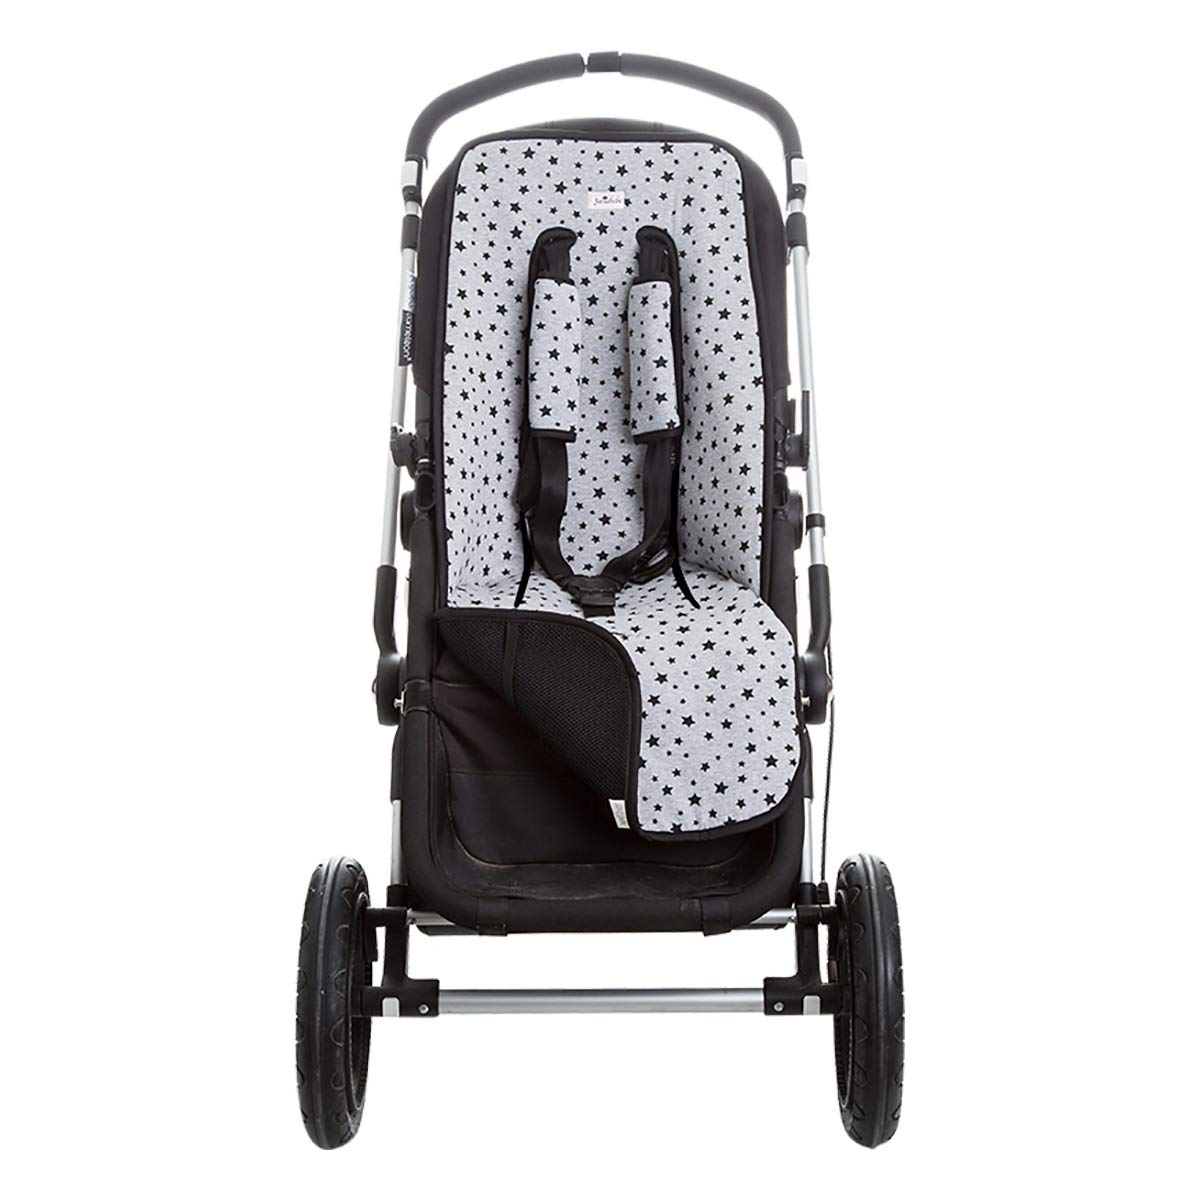 Janabebé Universal Cover Pushchair Luxury Foam + Protection Harnesses (Inglesina, Cibex, Bugaboo and More) (Black Star)